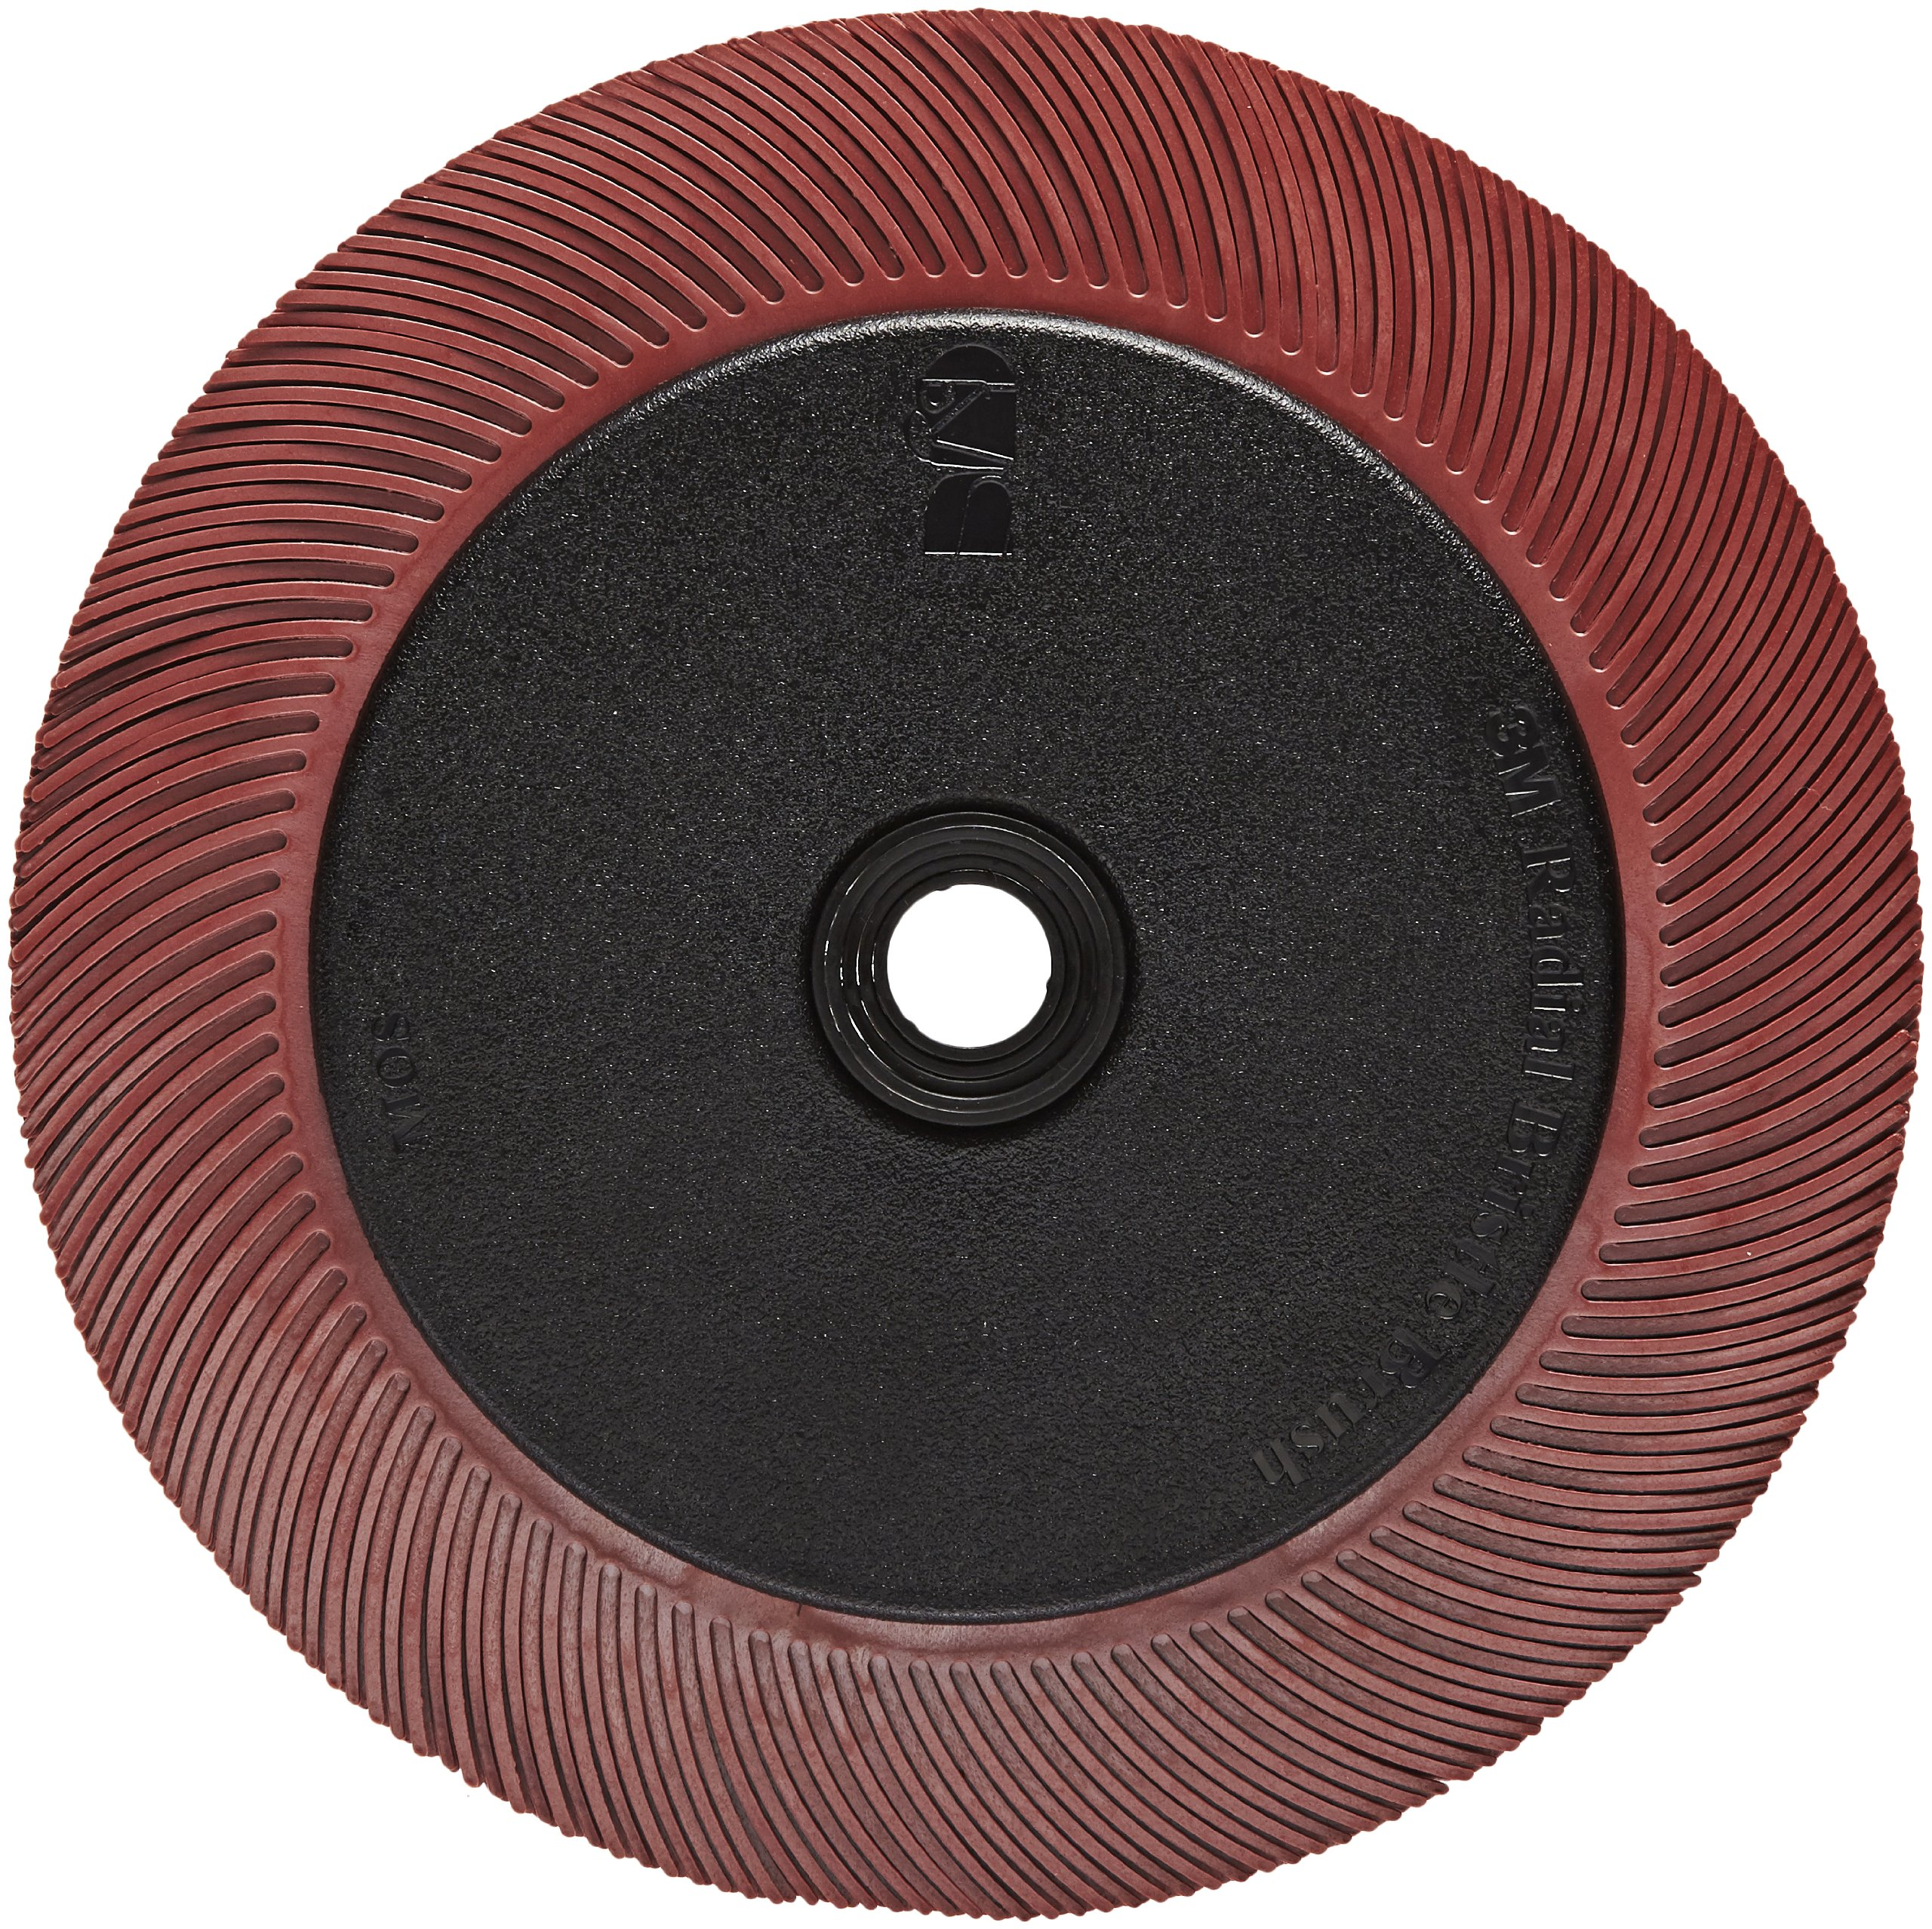 Scotch-Brite(TM) Radial Bristle Brush, Aluminum Oxide, 6000 rpm, 7-79/128 Diameter x 1 Width, 220 Grit, Red (Pack of 1)